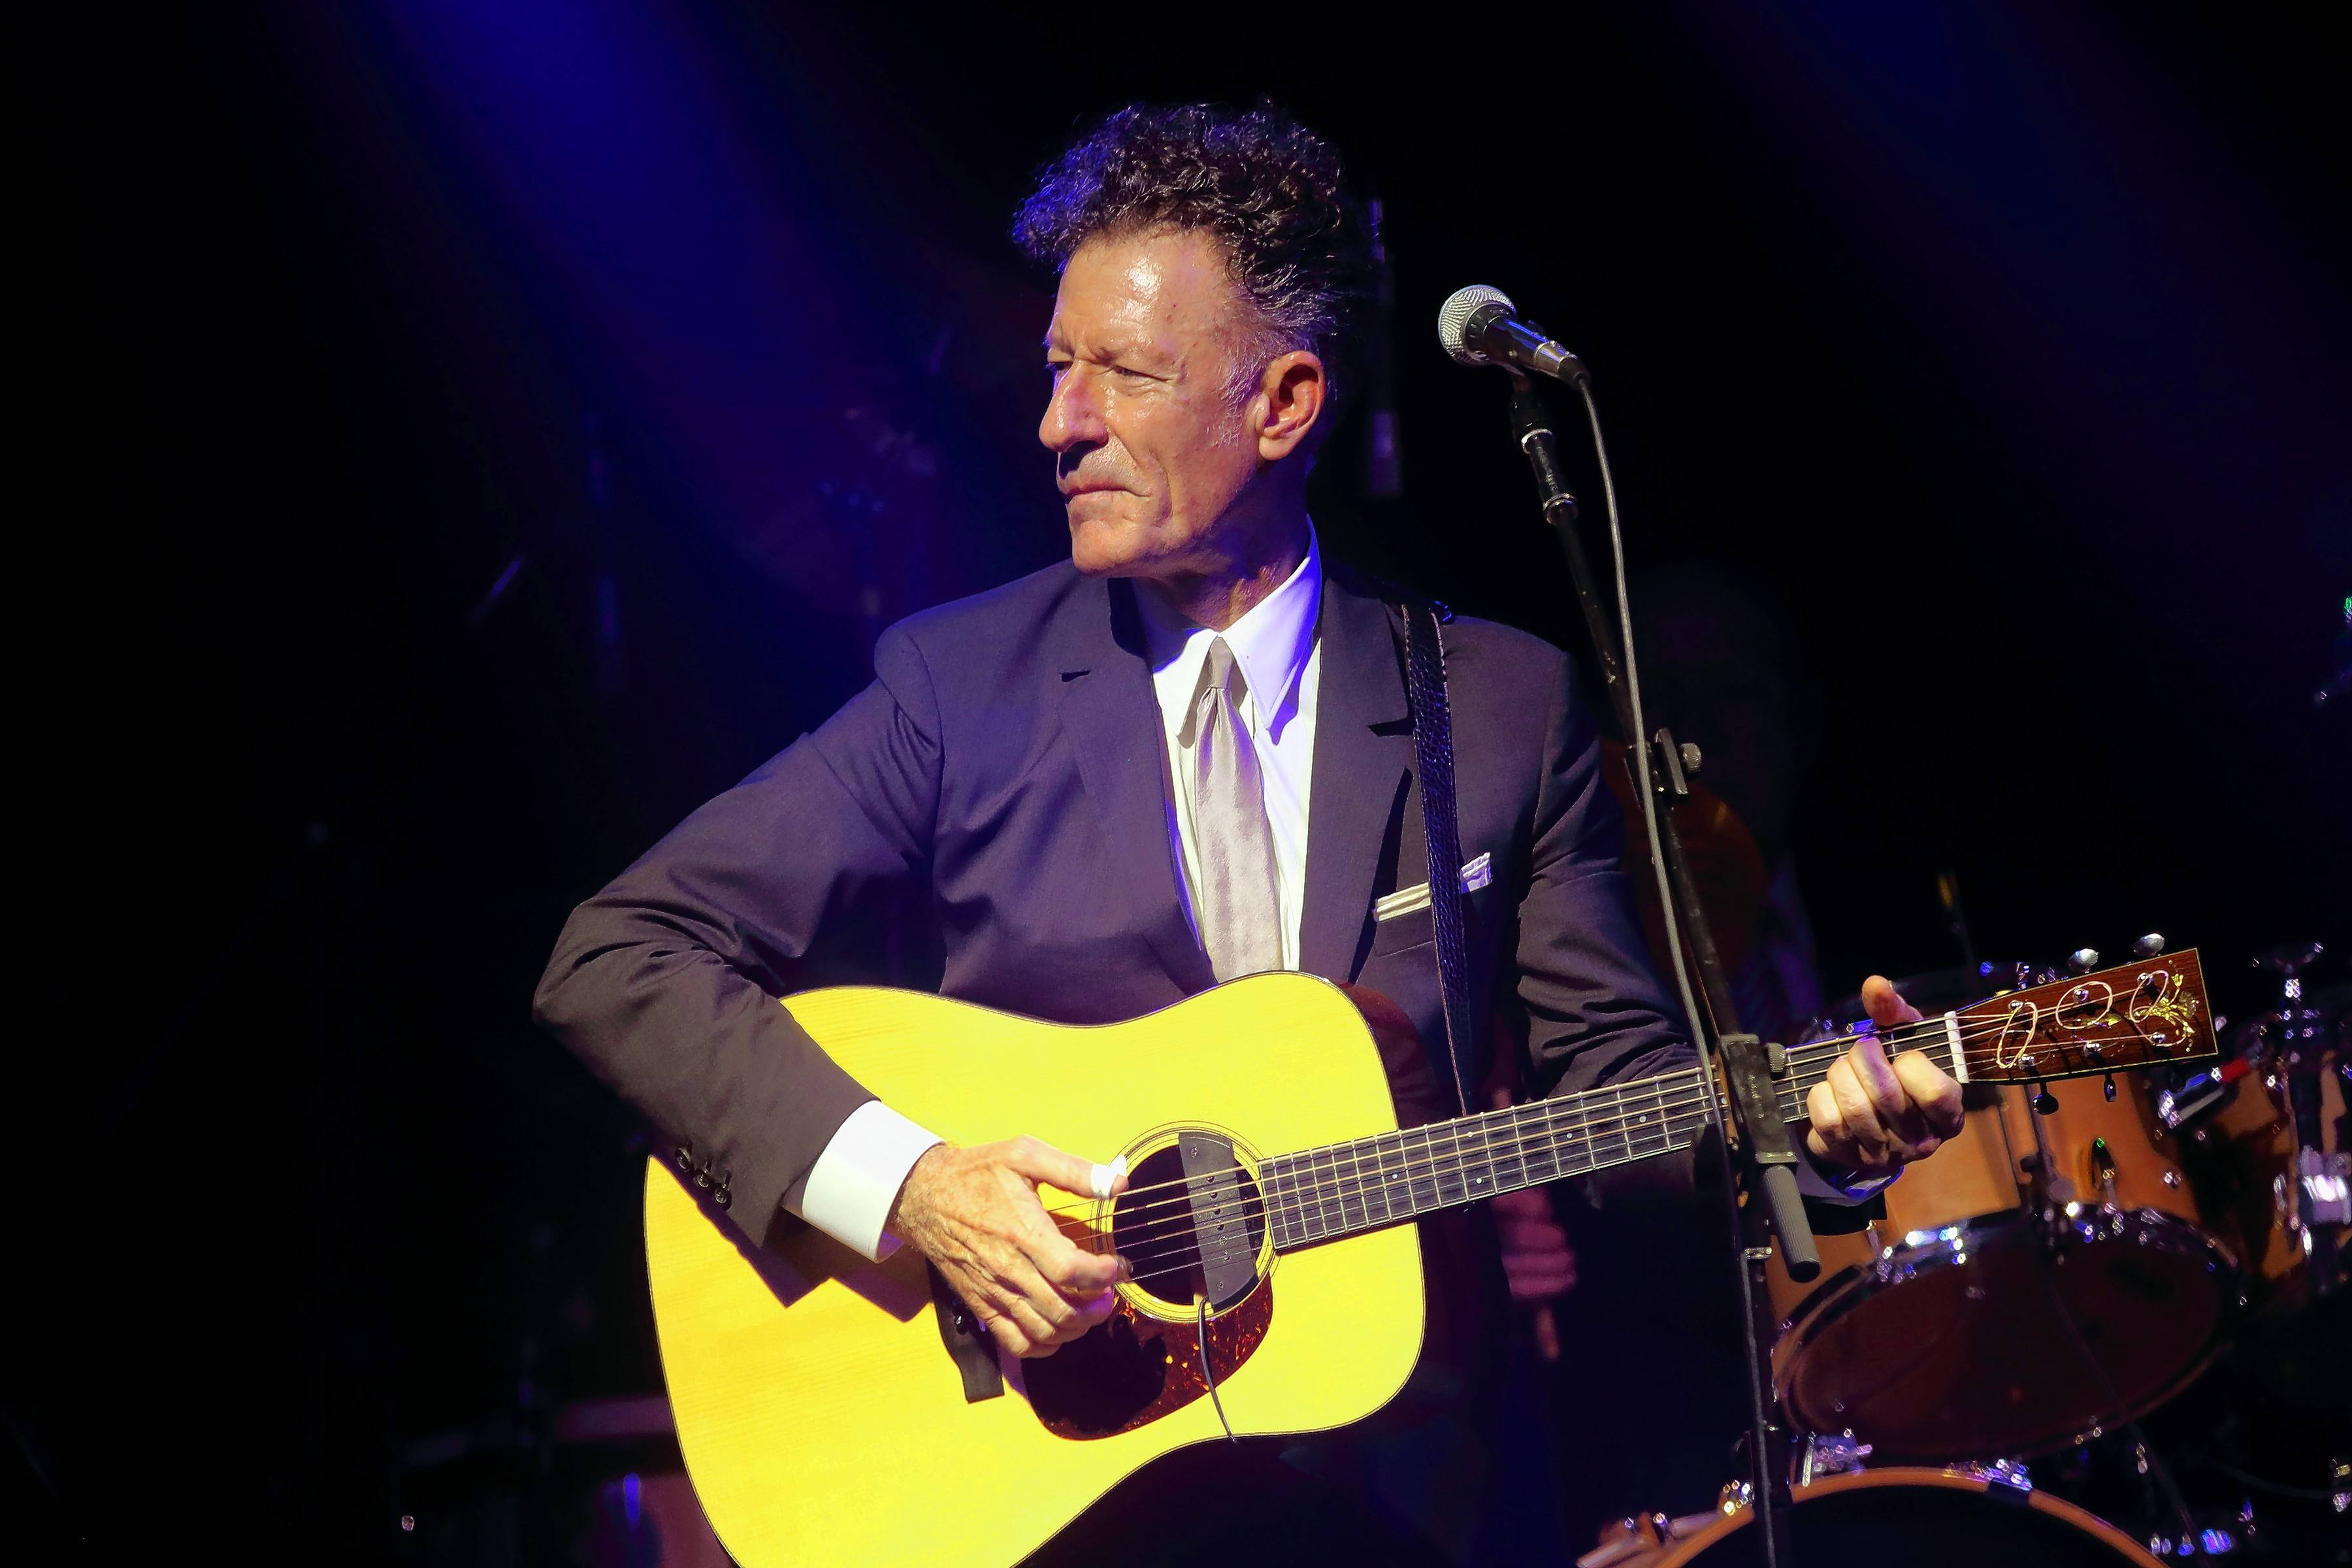 Lyle Lovett and His Large Band play the Chicago Theatre at 8 p.m. Saturday, July 29.